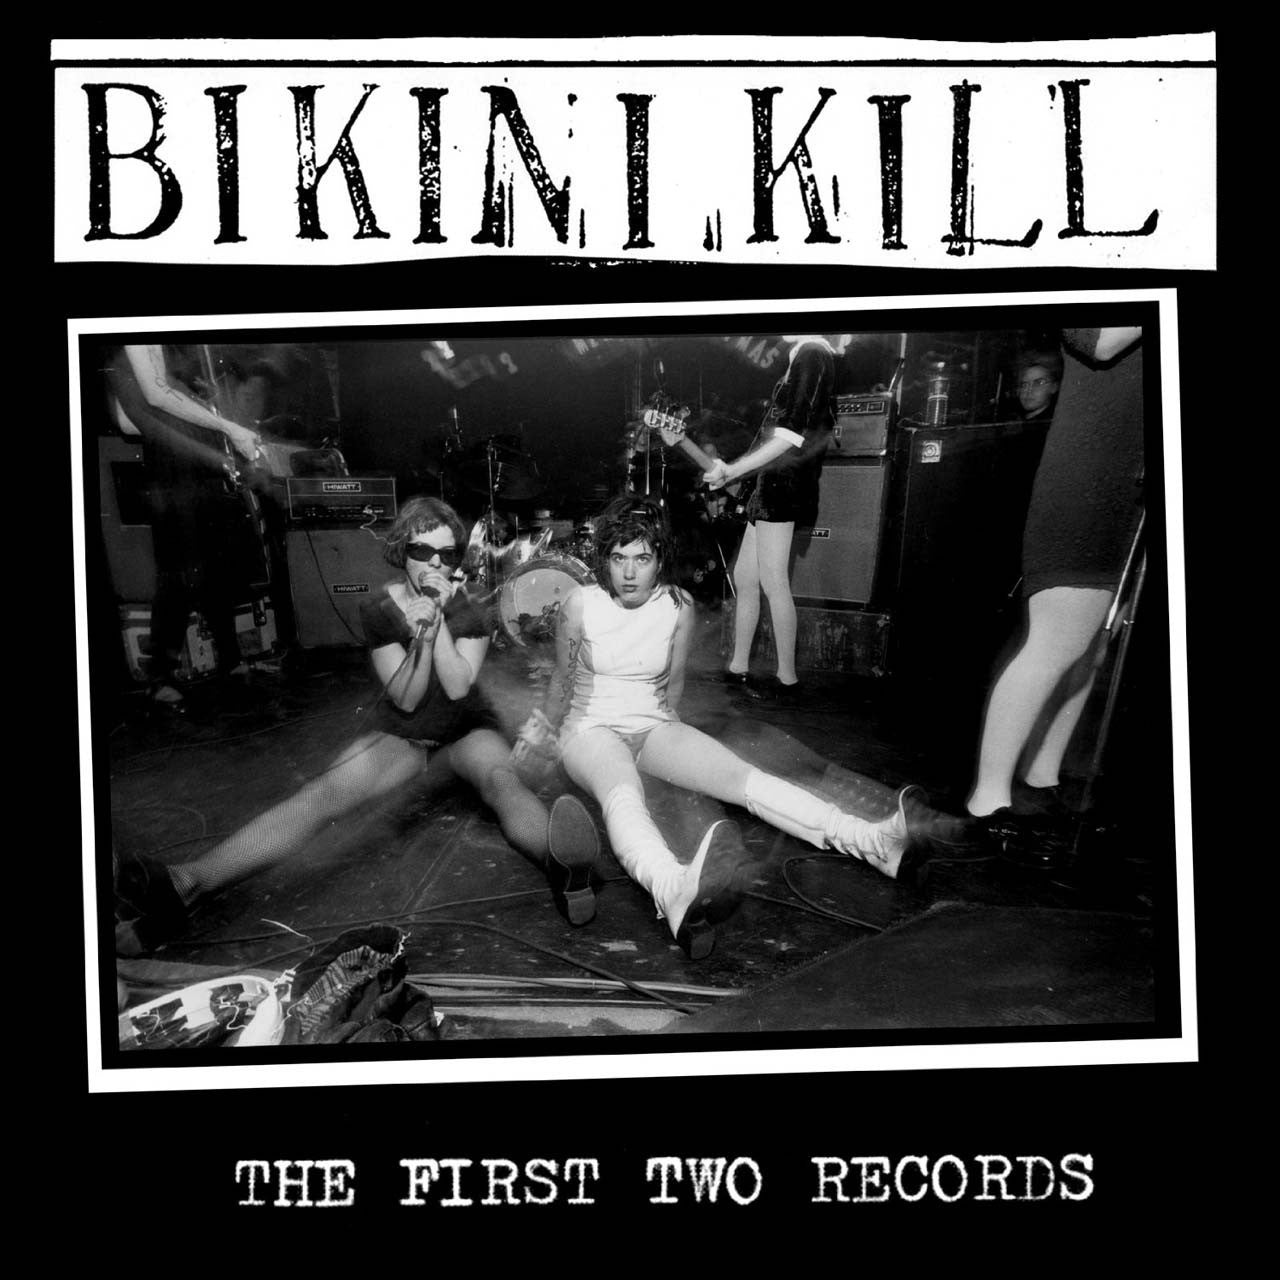 Bikini Kill - The First Two Records (CD)